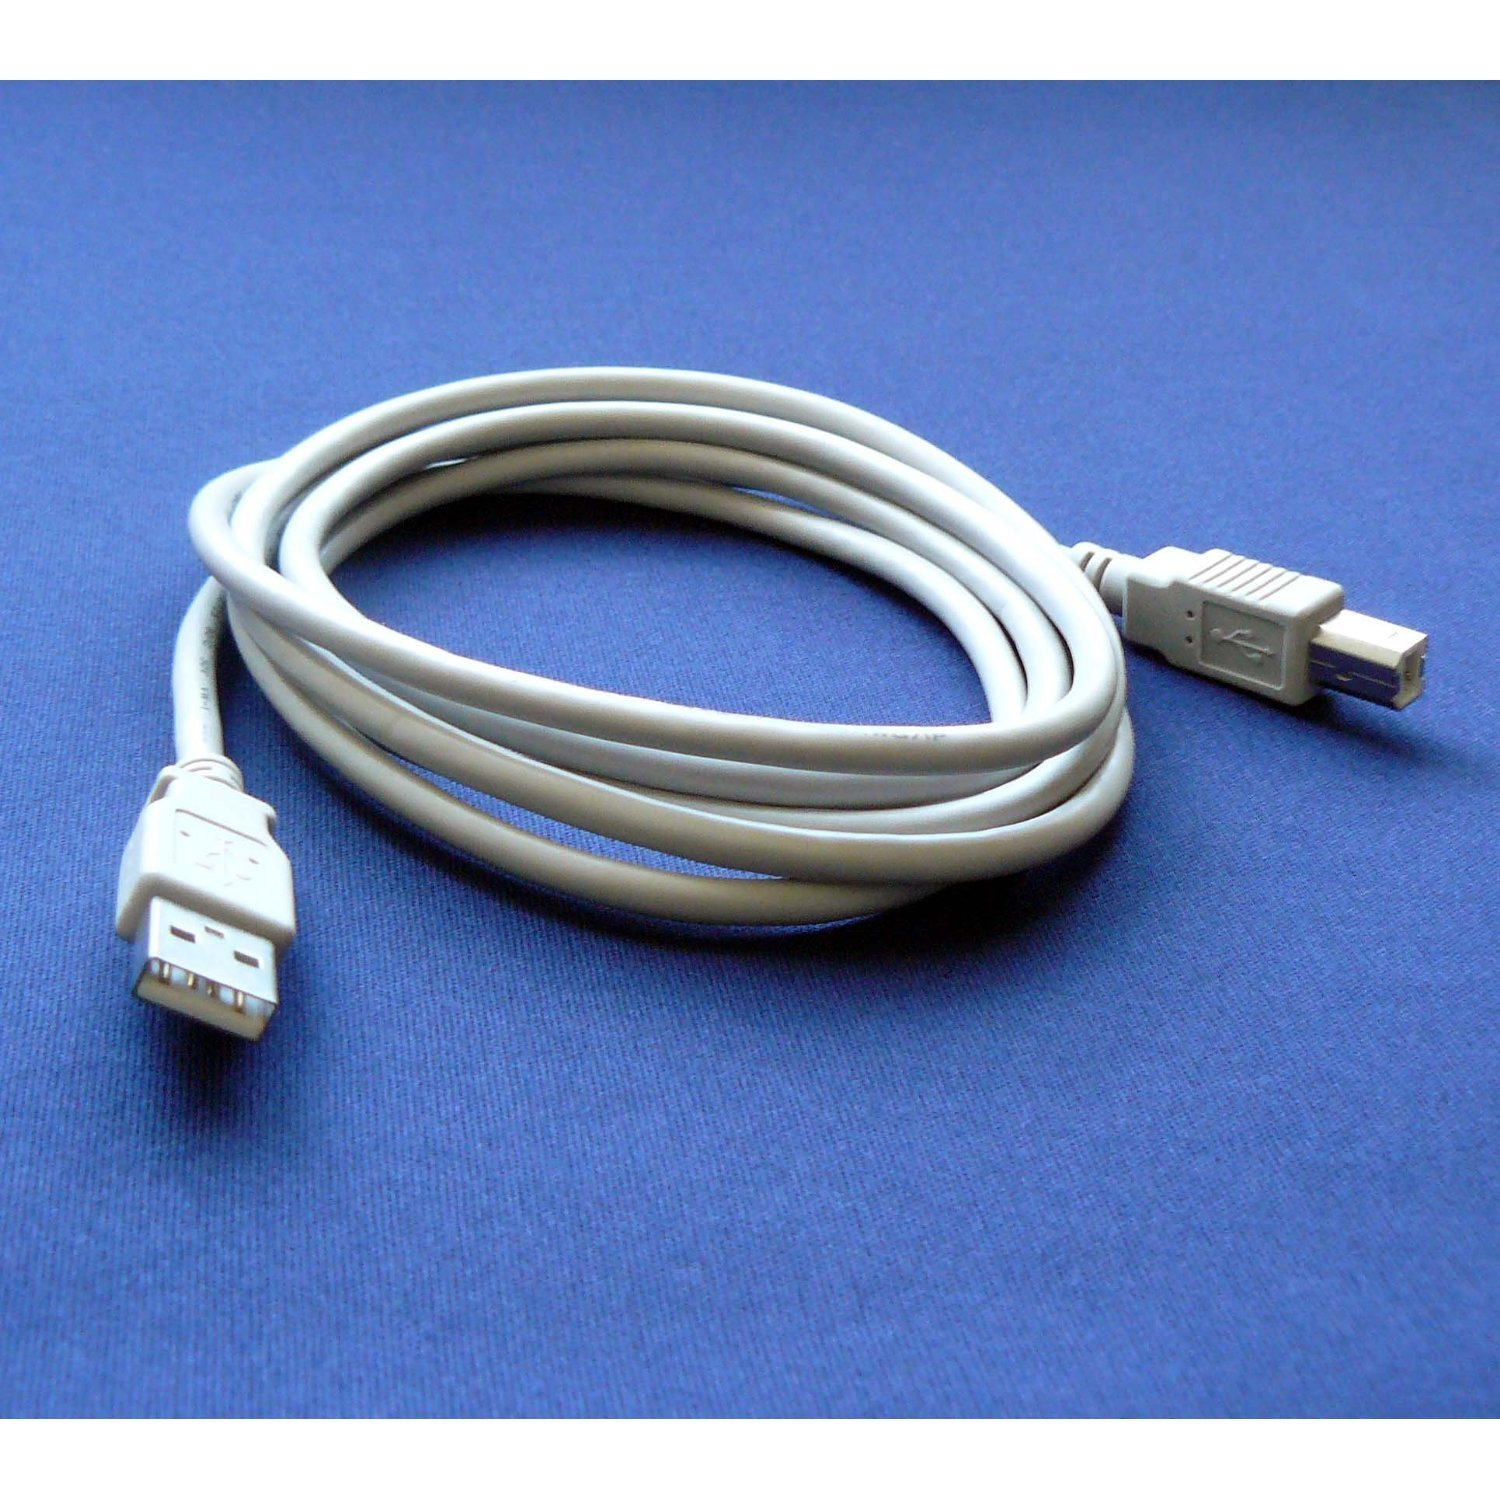 Primary image for HP Deskjet 6980 Color InkJet Printer Compatible USB 2.0 Cable Cord for PC, No...